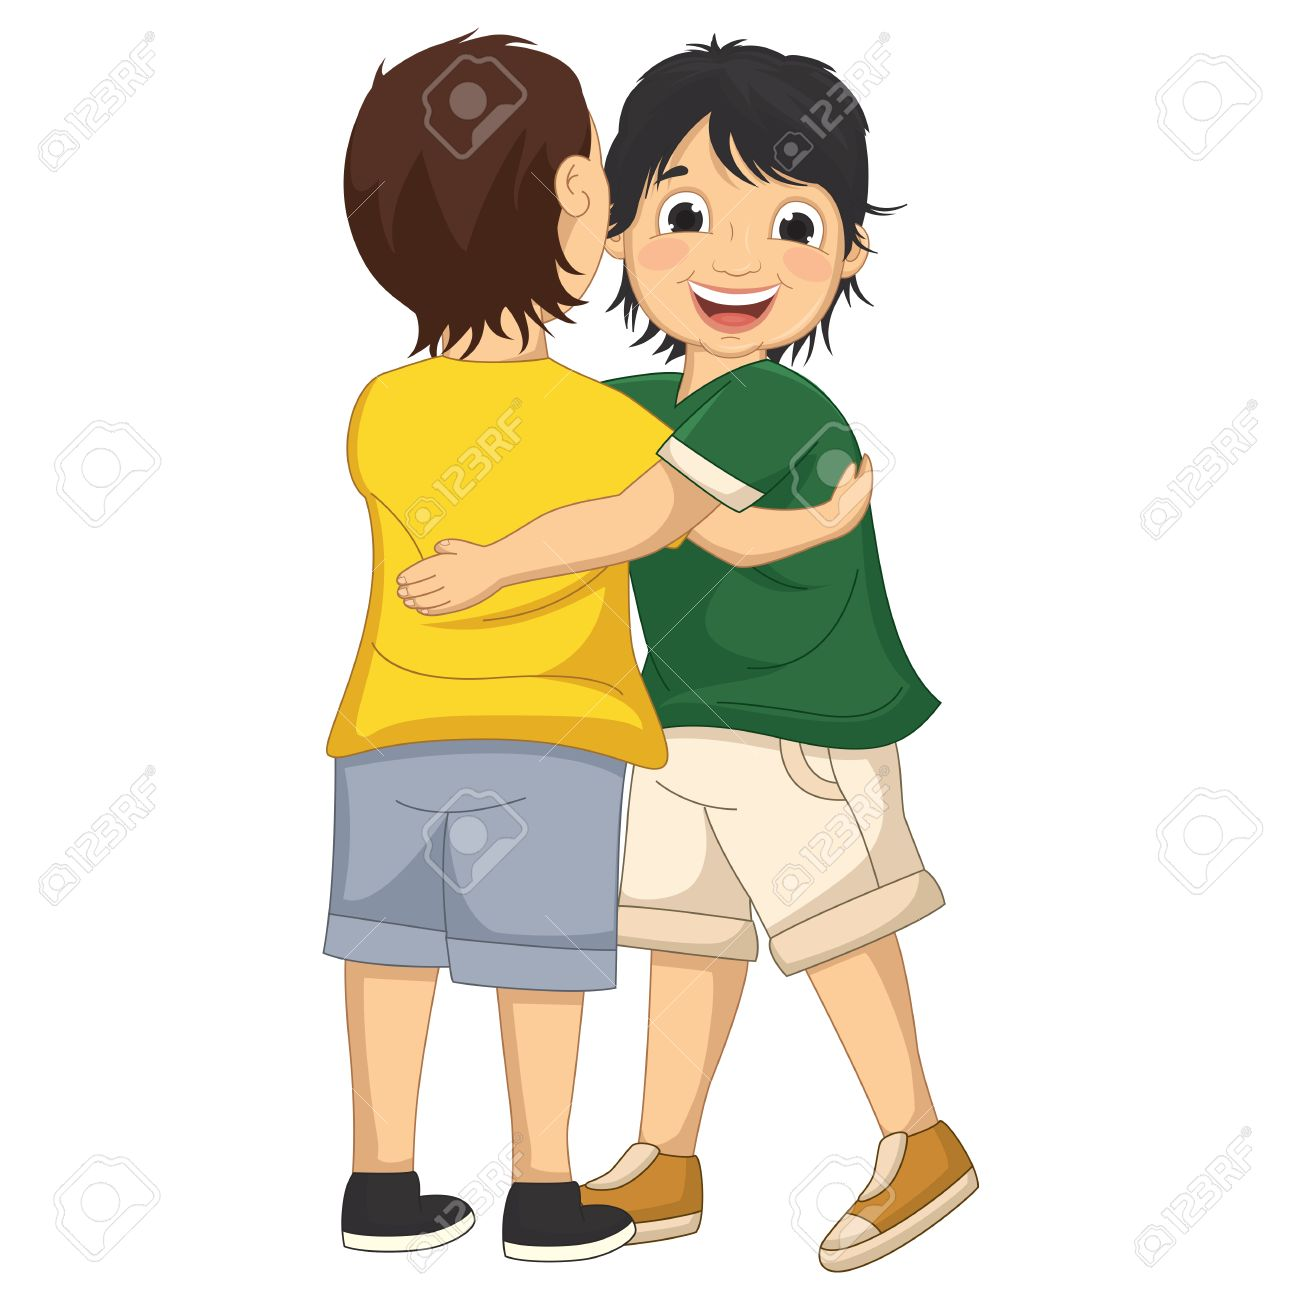 Kids hugging clipart » Clipart Station.